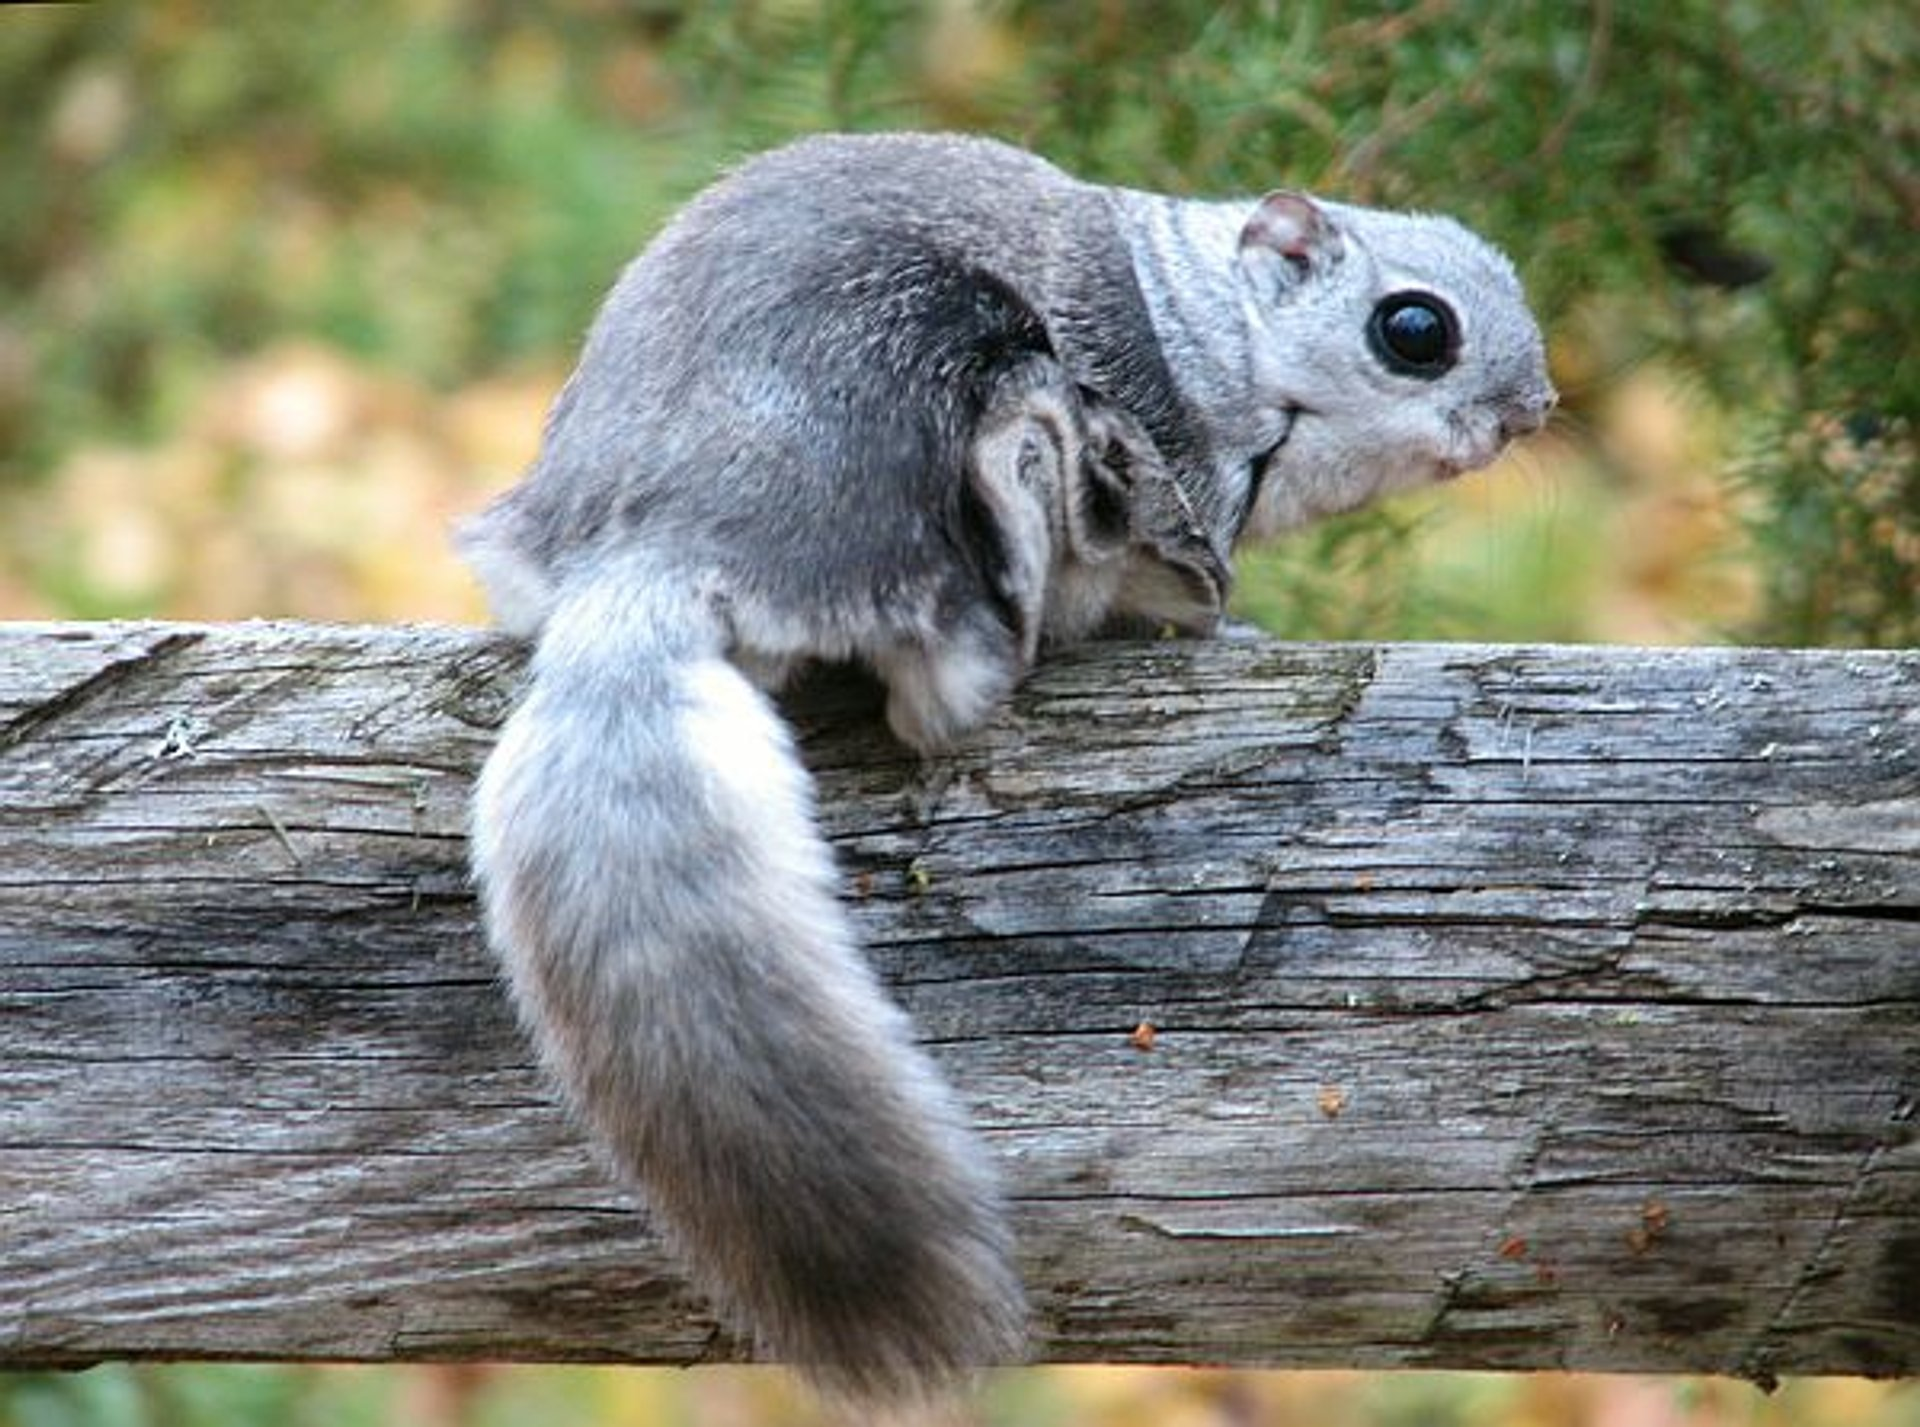 Flying Squirrels in Estonia 2020 - Best Time